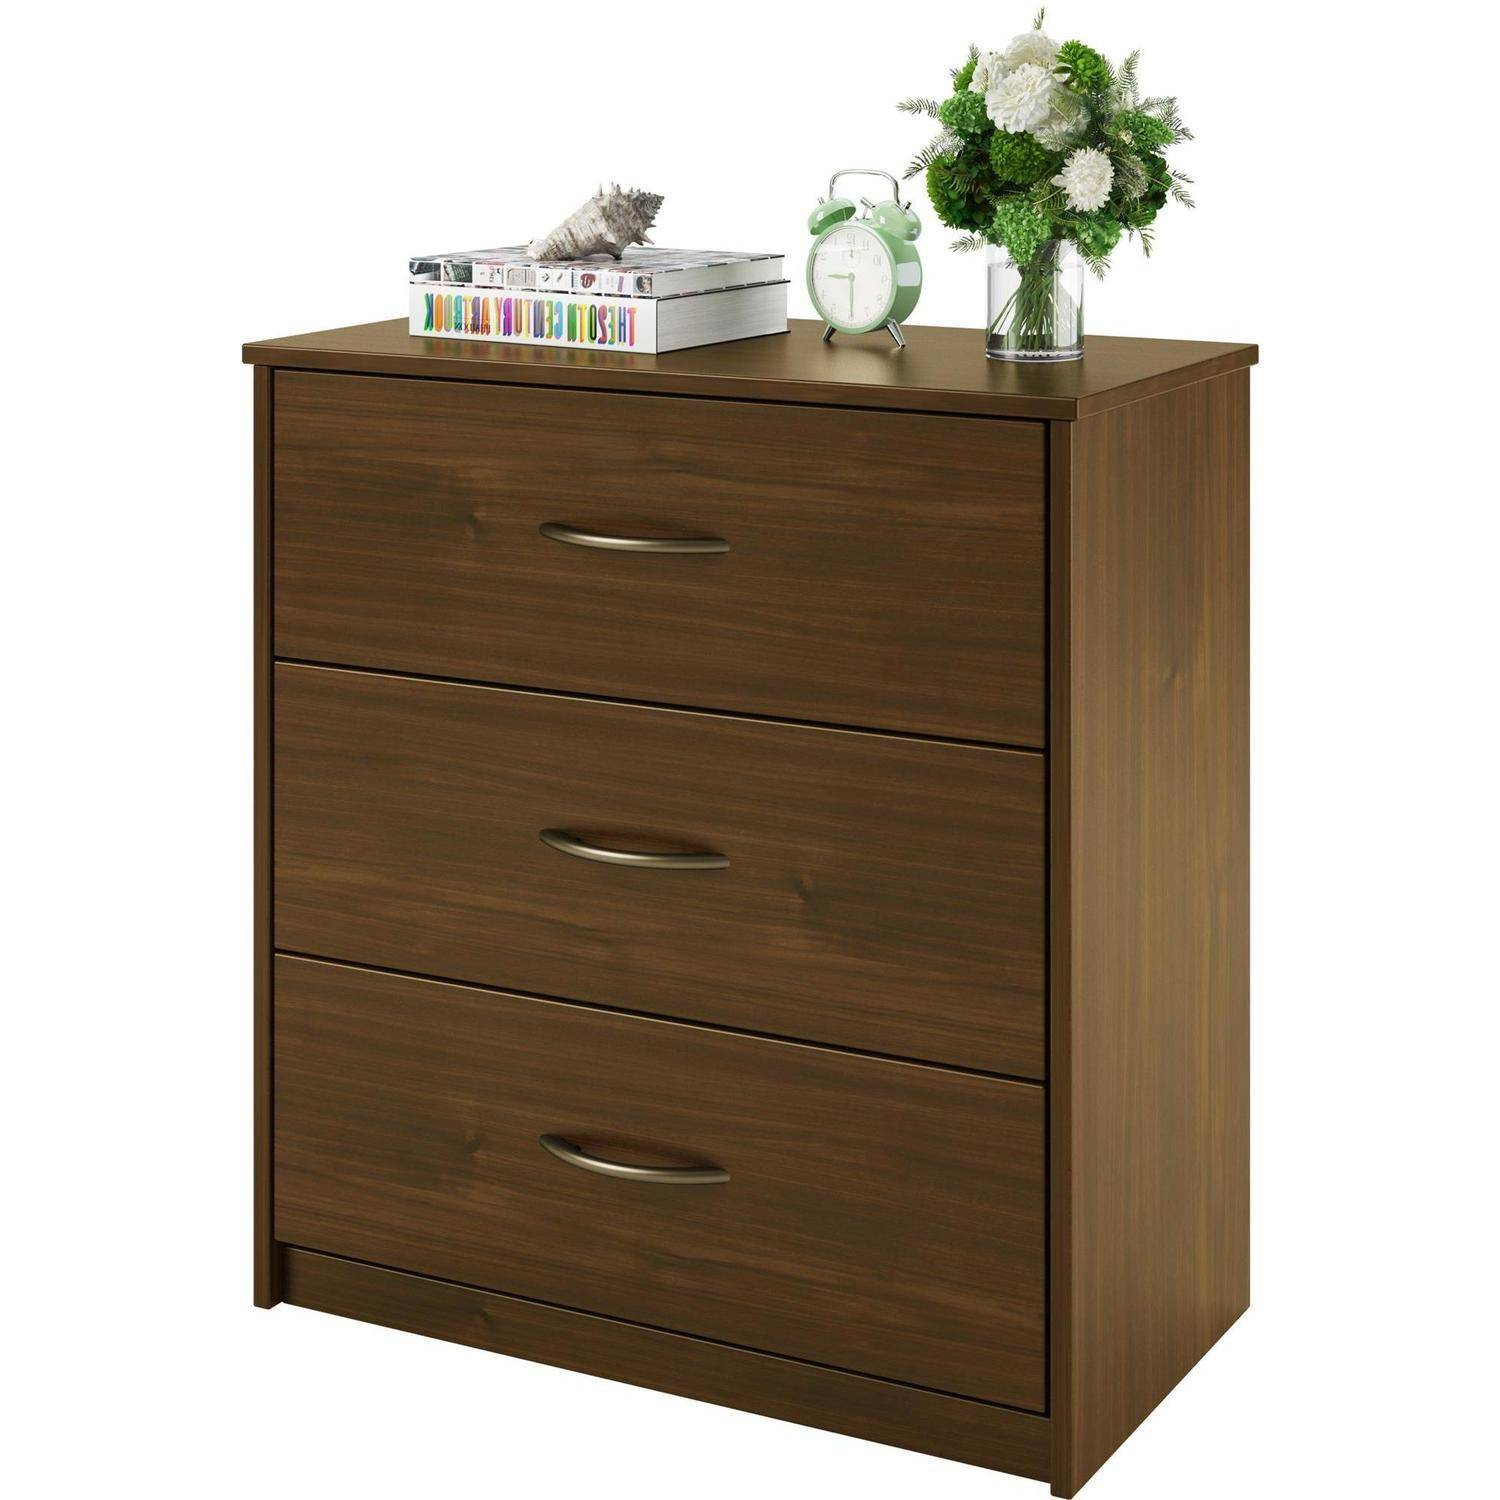 modern wood dresser 3 drawer dresser chest bedroom furniture black brown white 12649